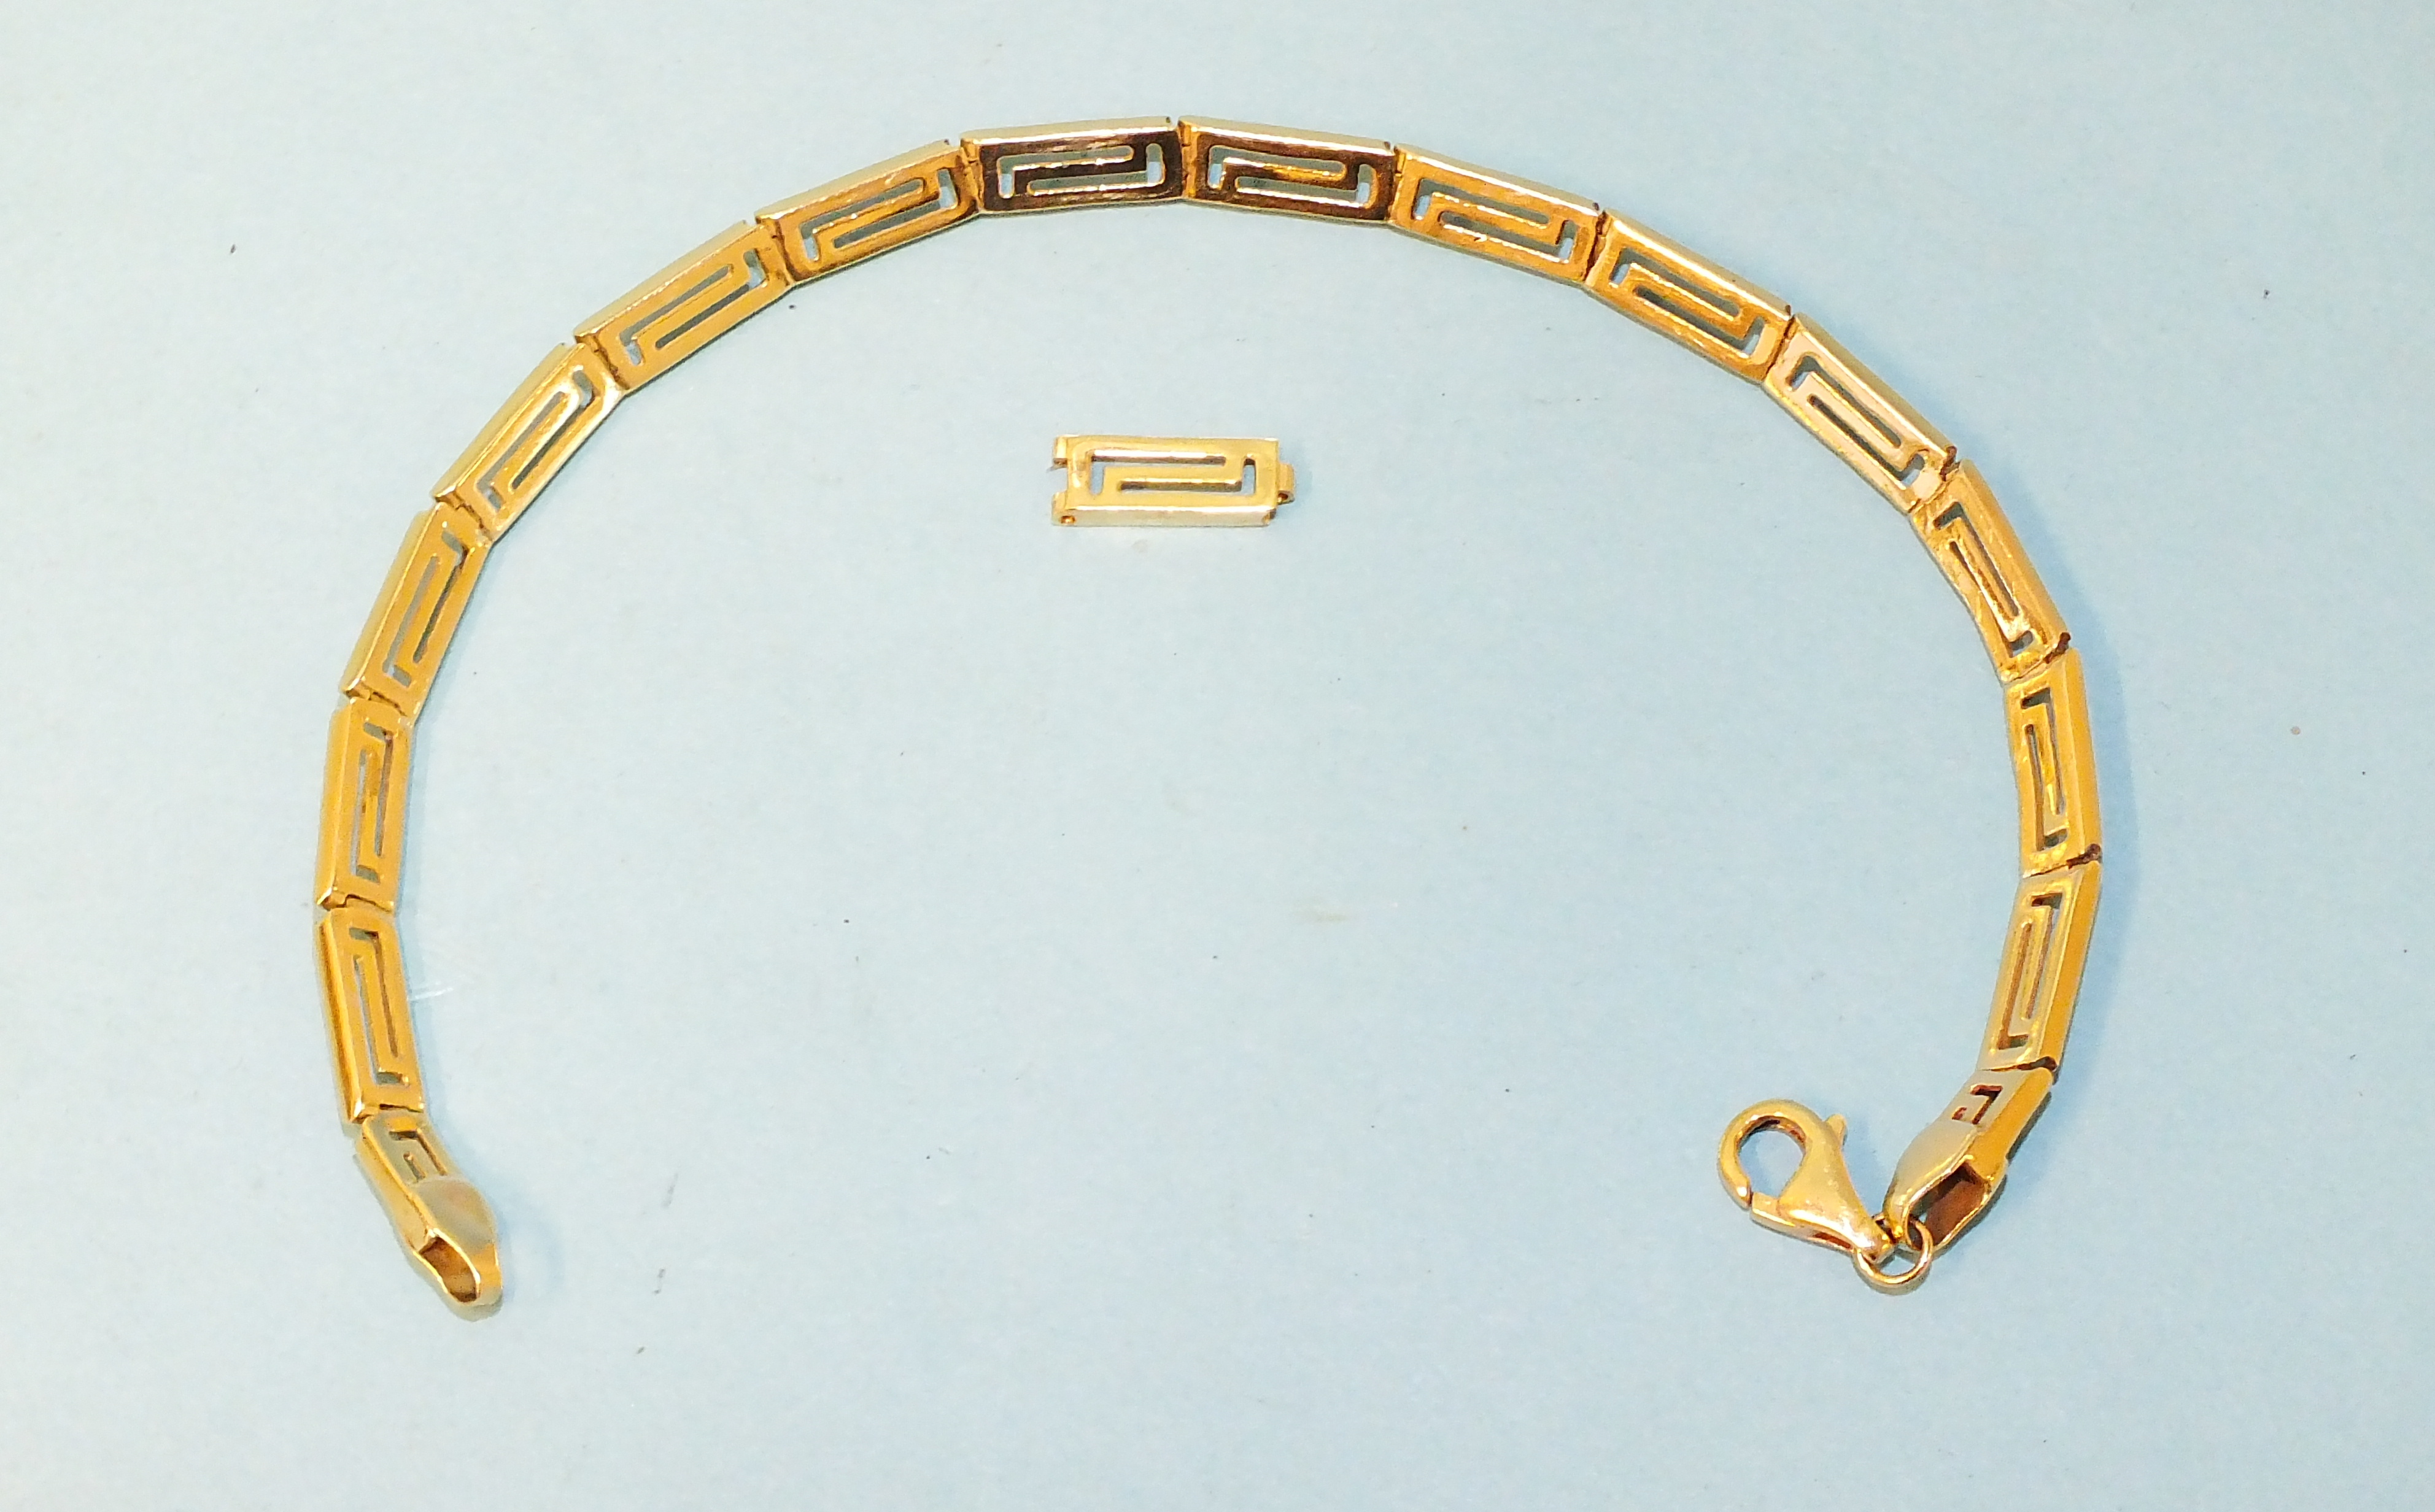 A 14ct yellow gold bracelet of geometric links, 19cm and an extra link, 8.4g.